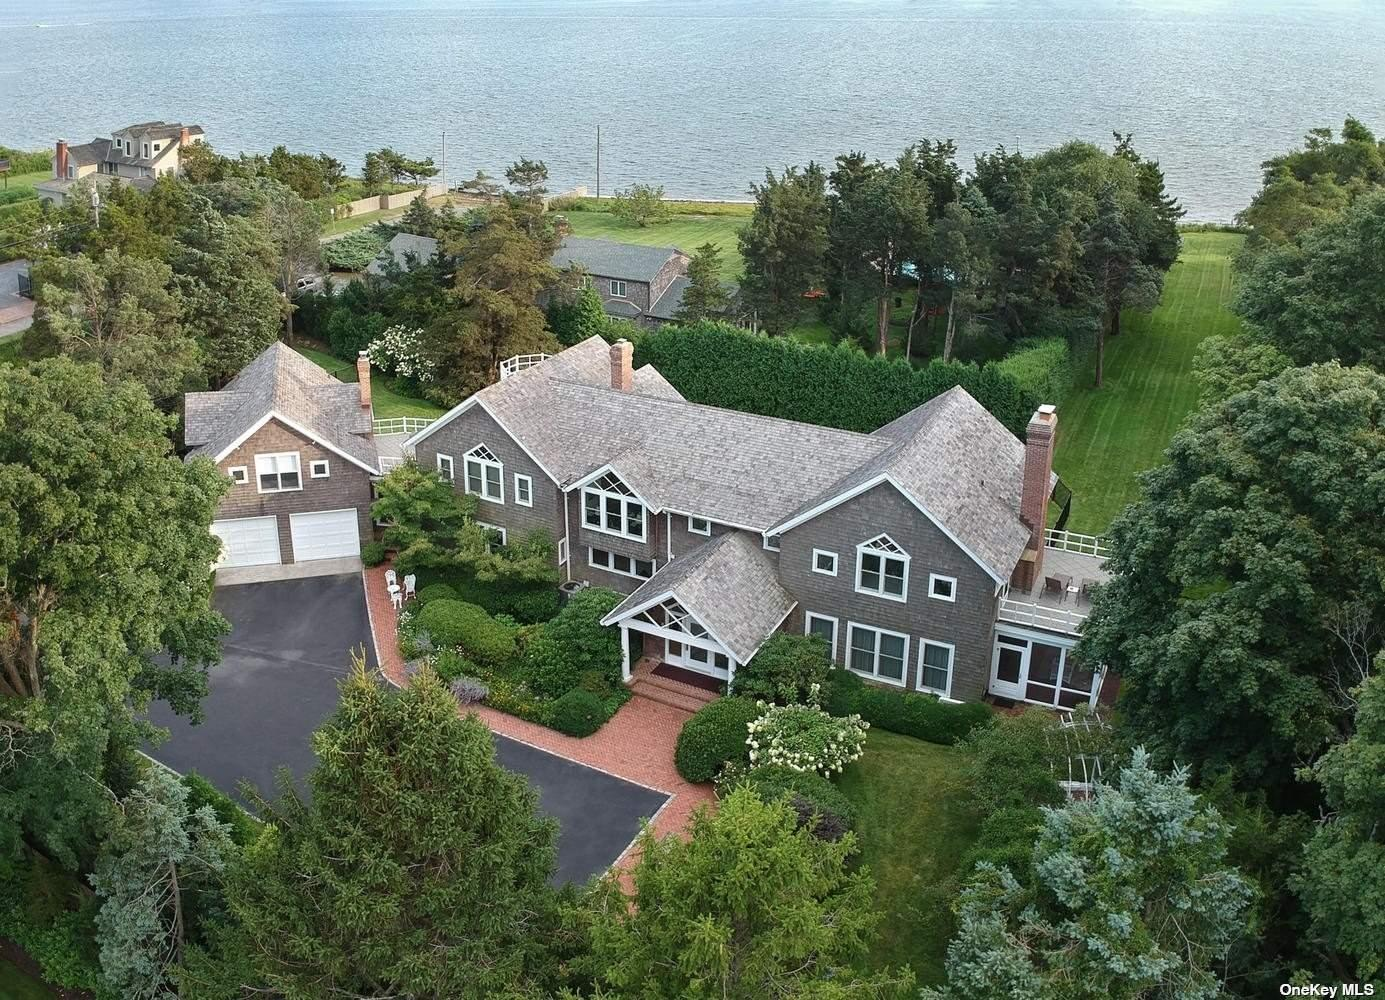 Set Back Nearly 300' From Waters Edge Sits this 5100' Sqft Home in Bellport Village with 50' of Private Beach Front On 1.1 Acres. Entering the Light Filled House from a Long Landscaped Driveway, the Main Level Boasts a Grand Formal Entrance Leading to the Formal Living Room & Dining Room Flanked with Sliding Doors to the Pool Patio & Gas Fireplaces. Adjacent the Living Room is a Screened Porch with Direct Bay Views. A Picture-Perfect Setting for Entertaining, the House Offers Well-Proportioned Rooms and Gracious Open Floor Plan. The 2nd Floor has a Master Bedroom Ensuite w/ Private Access to a Balcony Overlooking the Bay, 2 Walk-In Closets, Gas Fireplace & Marble Bathroom. Pass Through 2nd Level Den w/ Cathedral Ceilings to the Guest Bedrooms Each with Access to a Private Terrace Leading to Separate Guest Quarters w/ Kitchenette & Full Bathroom. Expansive Outdoor Brick Patio Surrounds 14x28 In-Ground Htd Pool. Privacy & Serenity in Every Corner of this Elegant Property!